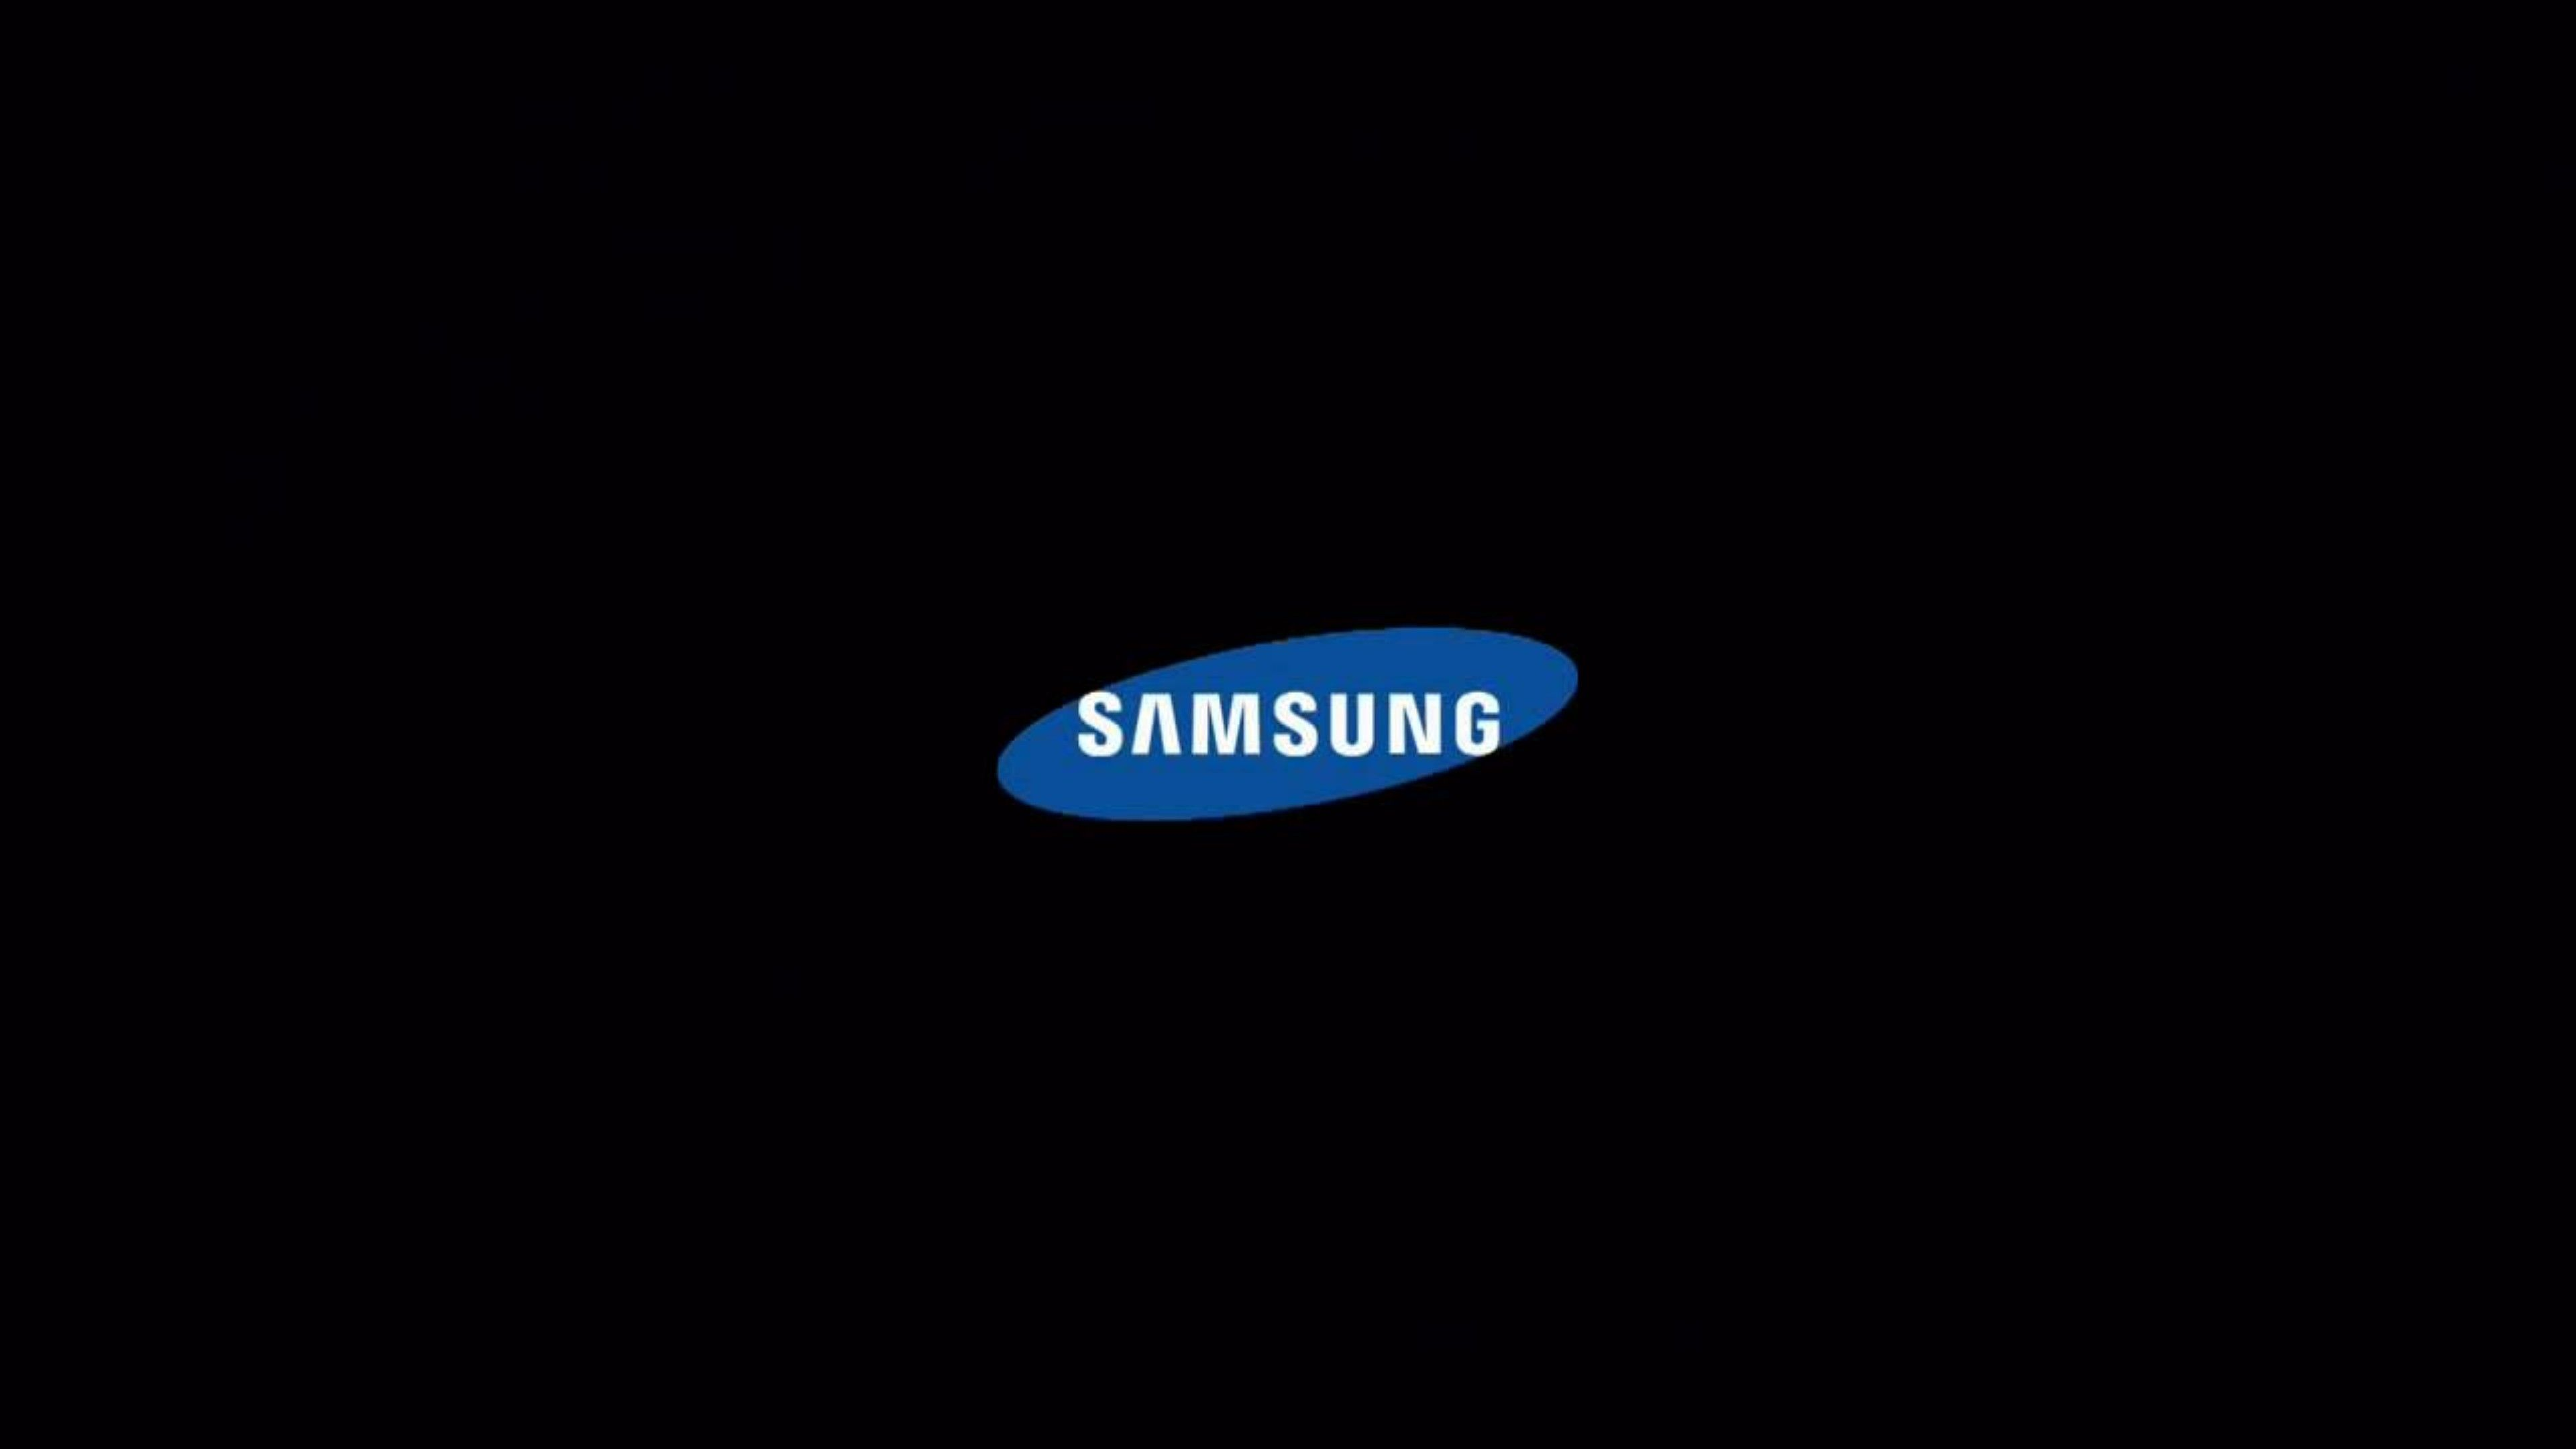 Samsung Logo Wallpapers - Top Free Samsung Logo Backgrounds